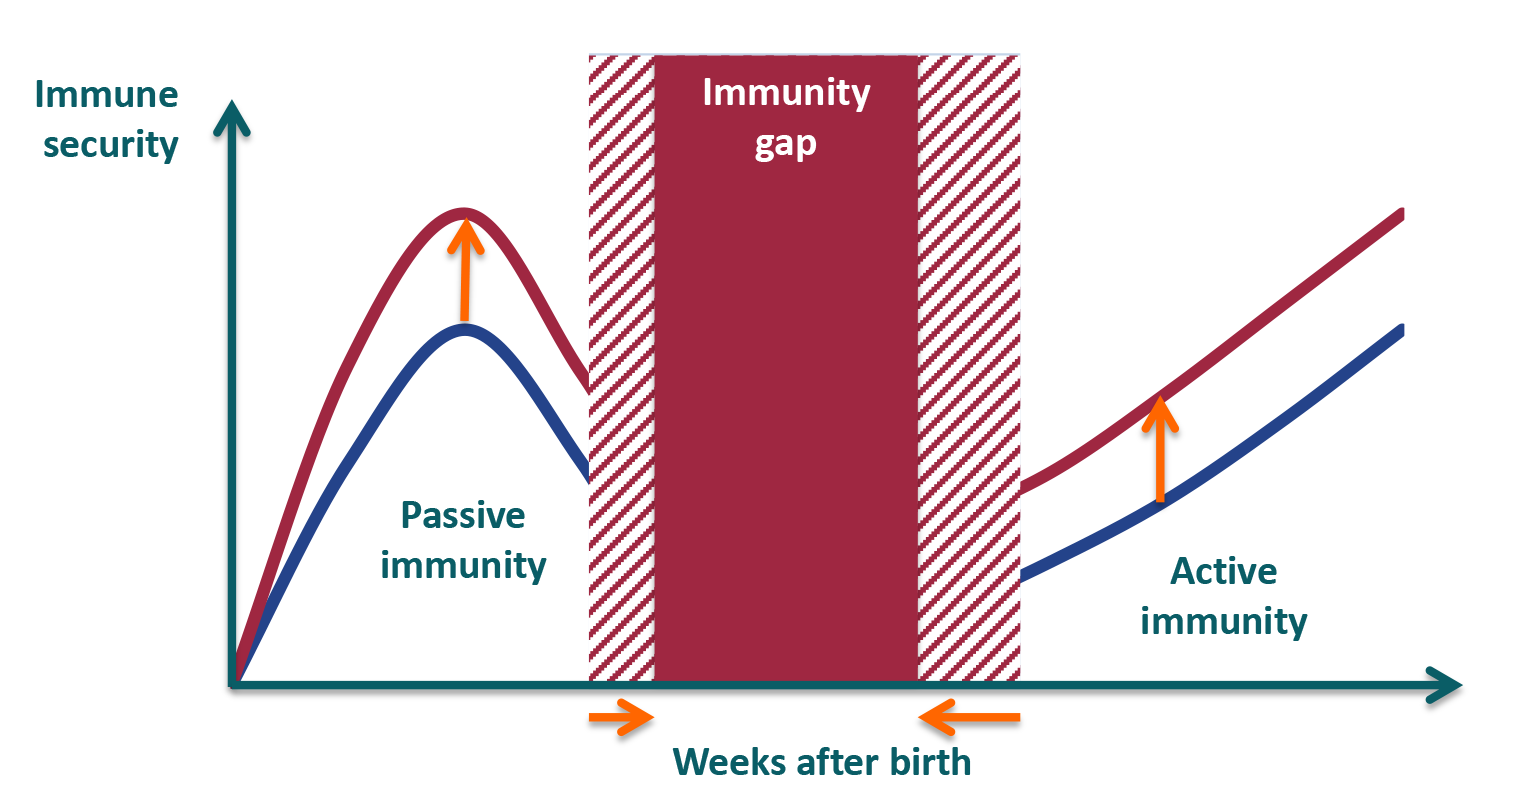 Imun up immune security passive active